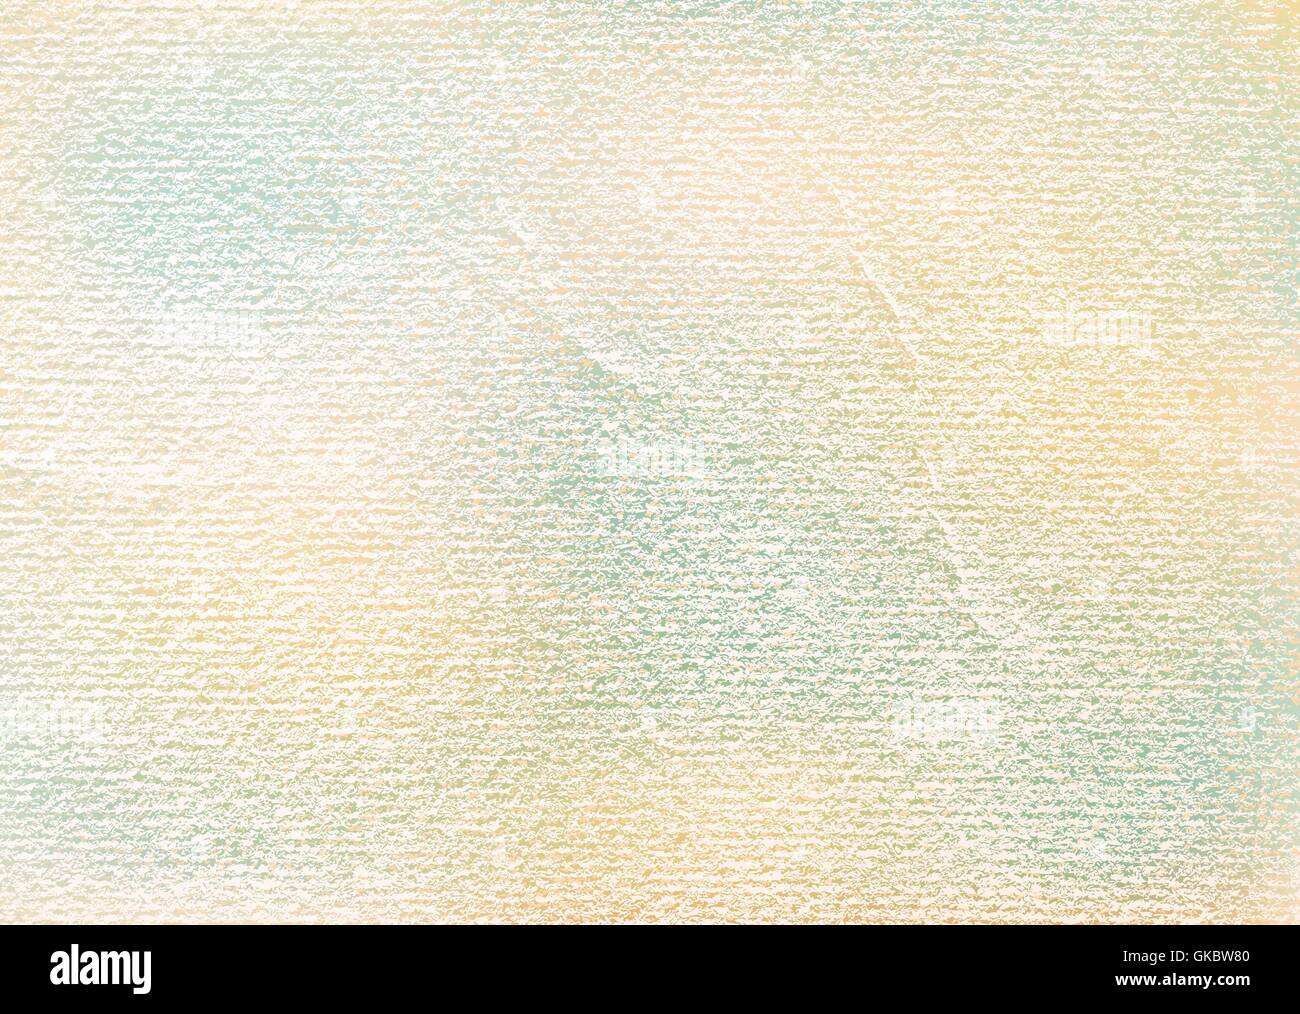 Watercolor paper vintage texture with folds, scratches, damages. Template size a4 horizontal format. Old background - Stock Image